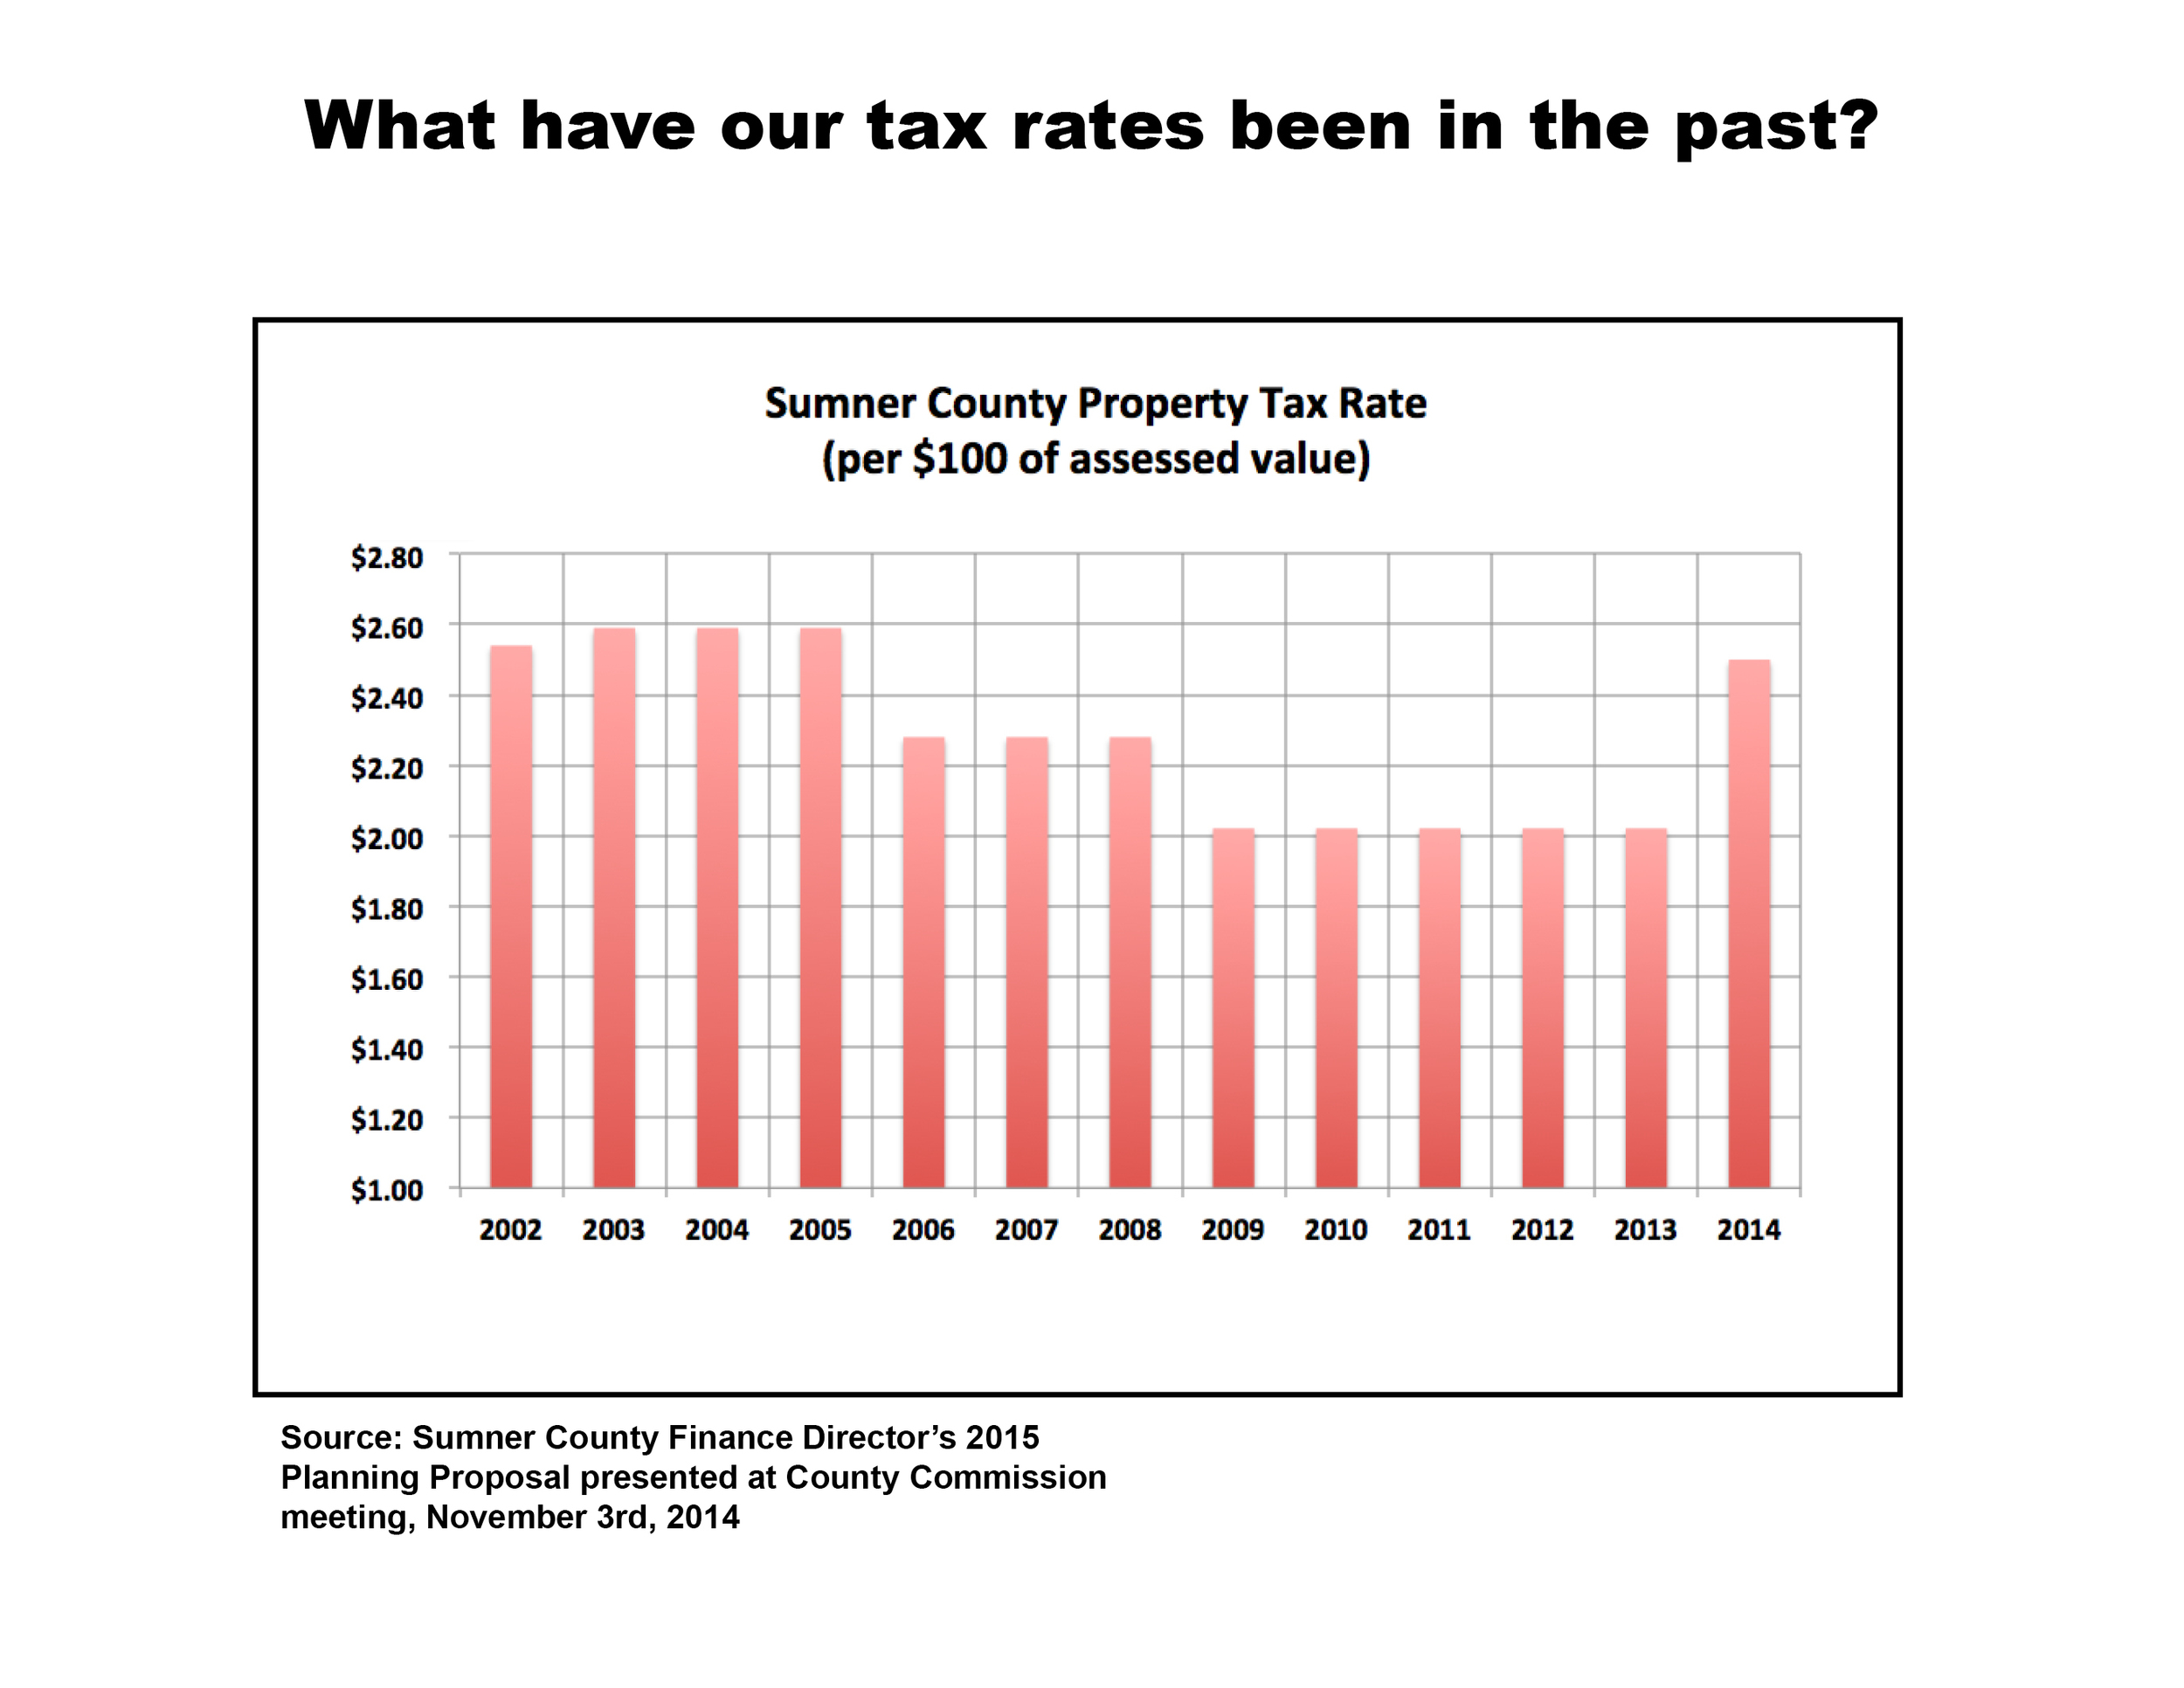 Sumner County property tax rates from 2002 to 2014. The 2002 tax rate was $2.54 per $100 of assessed value; the current rate is $2.50.